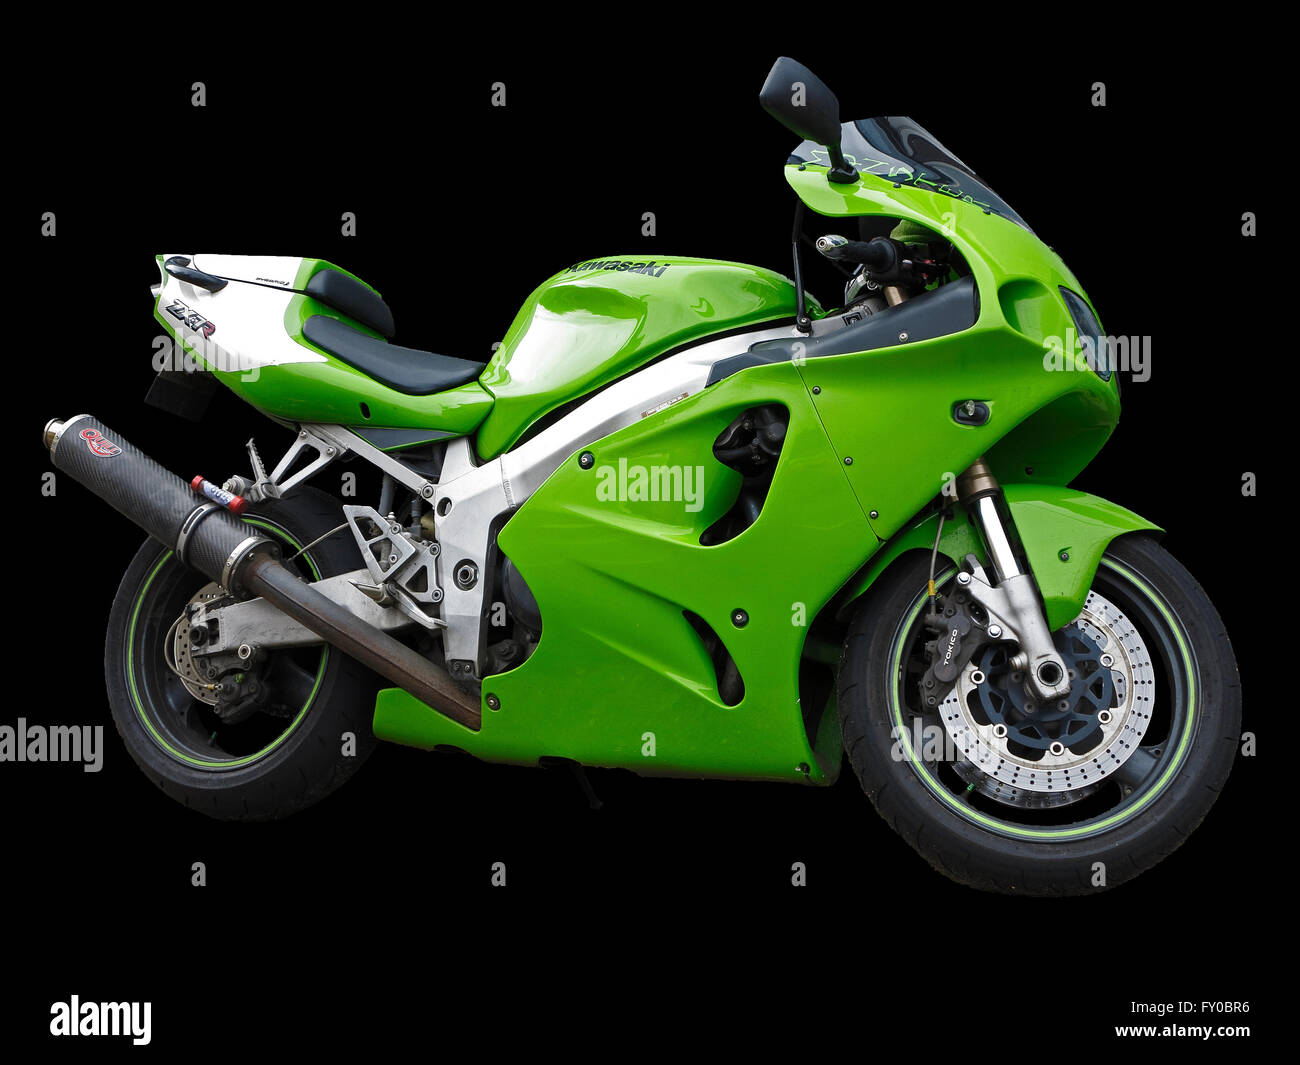 green-japanese-motor-bike-cutout-on-black-background-see-also-cxed3x-FY0BR6.jpg